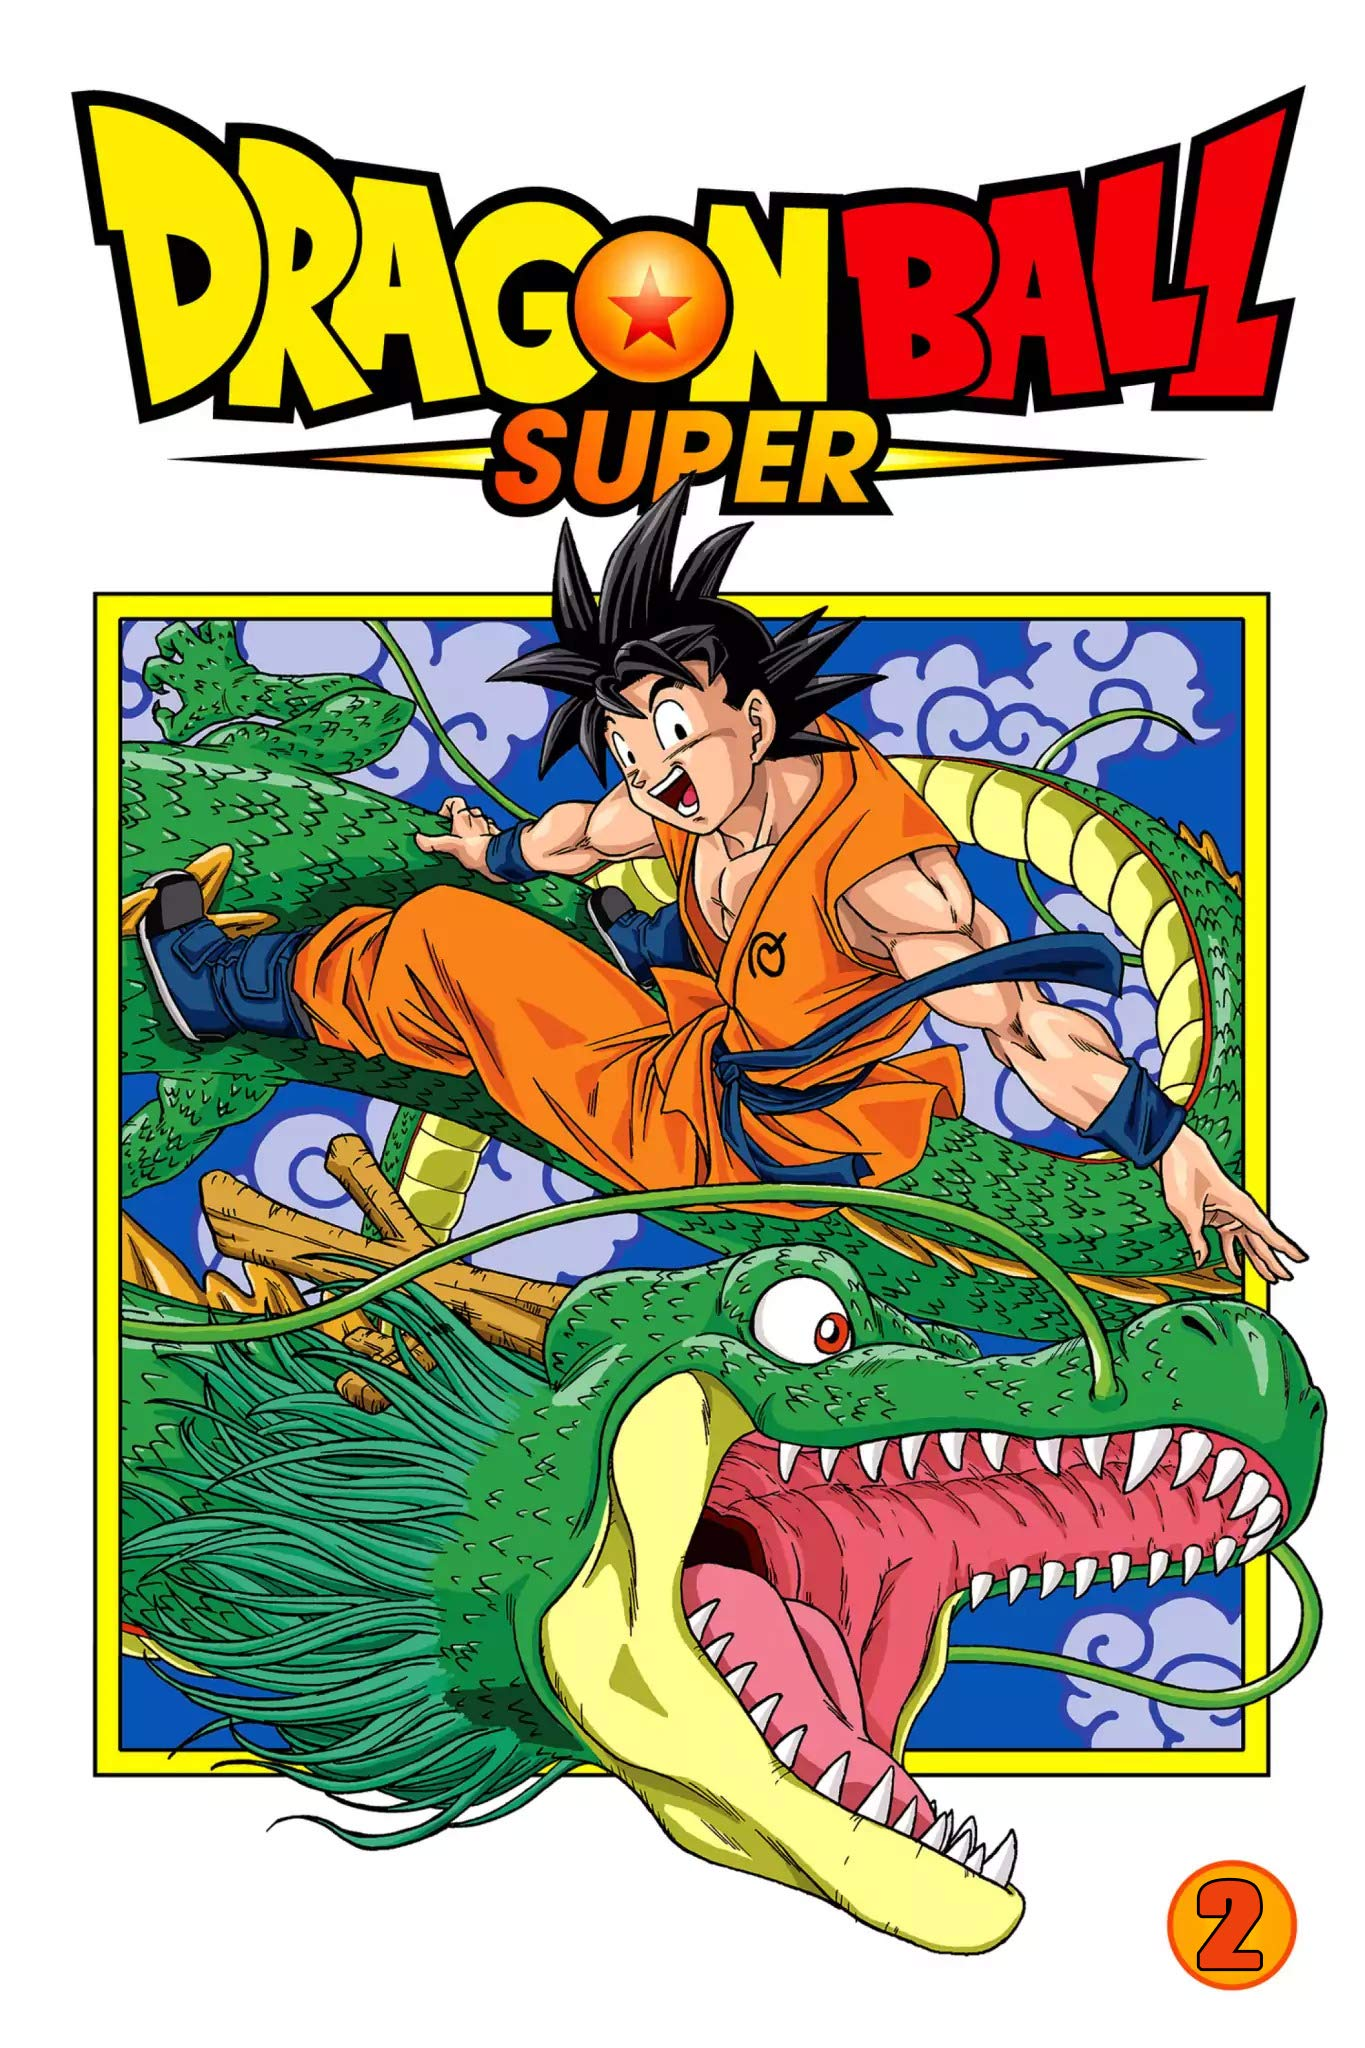 Fantasy Manga: Dragon Ball Super volume 2